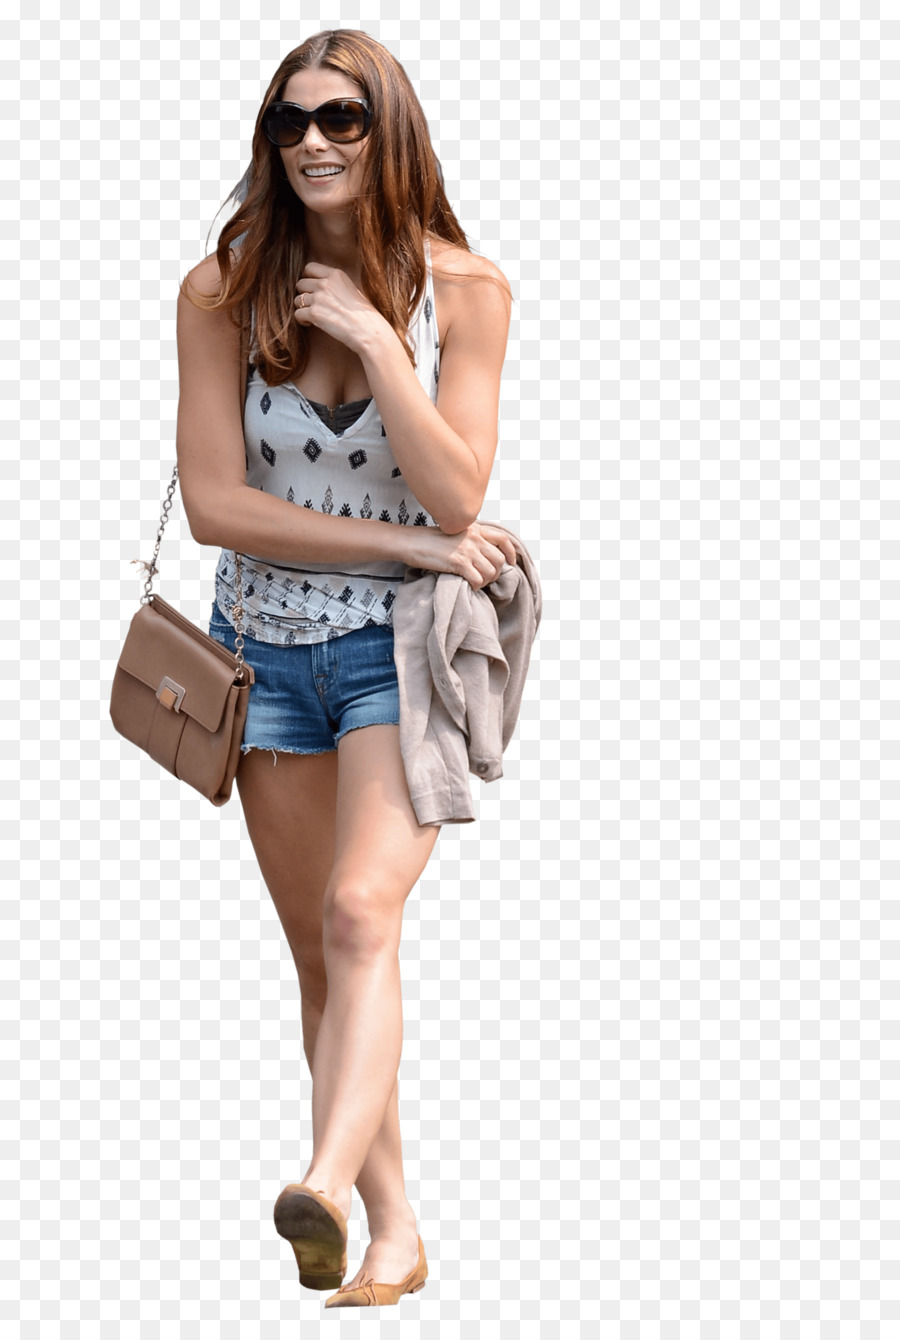 Ashley Greene Grimm Clip art - ashley greene